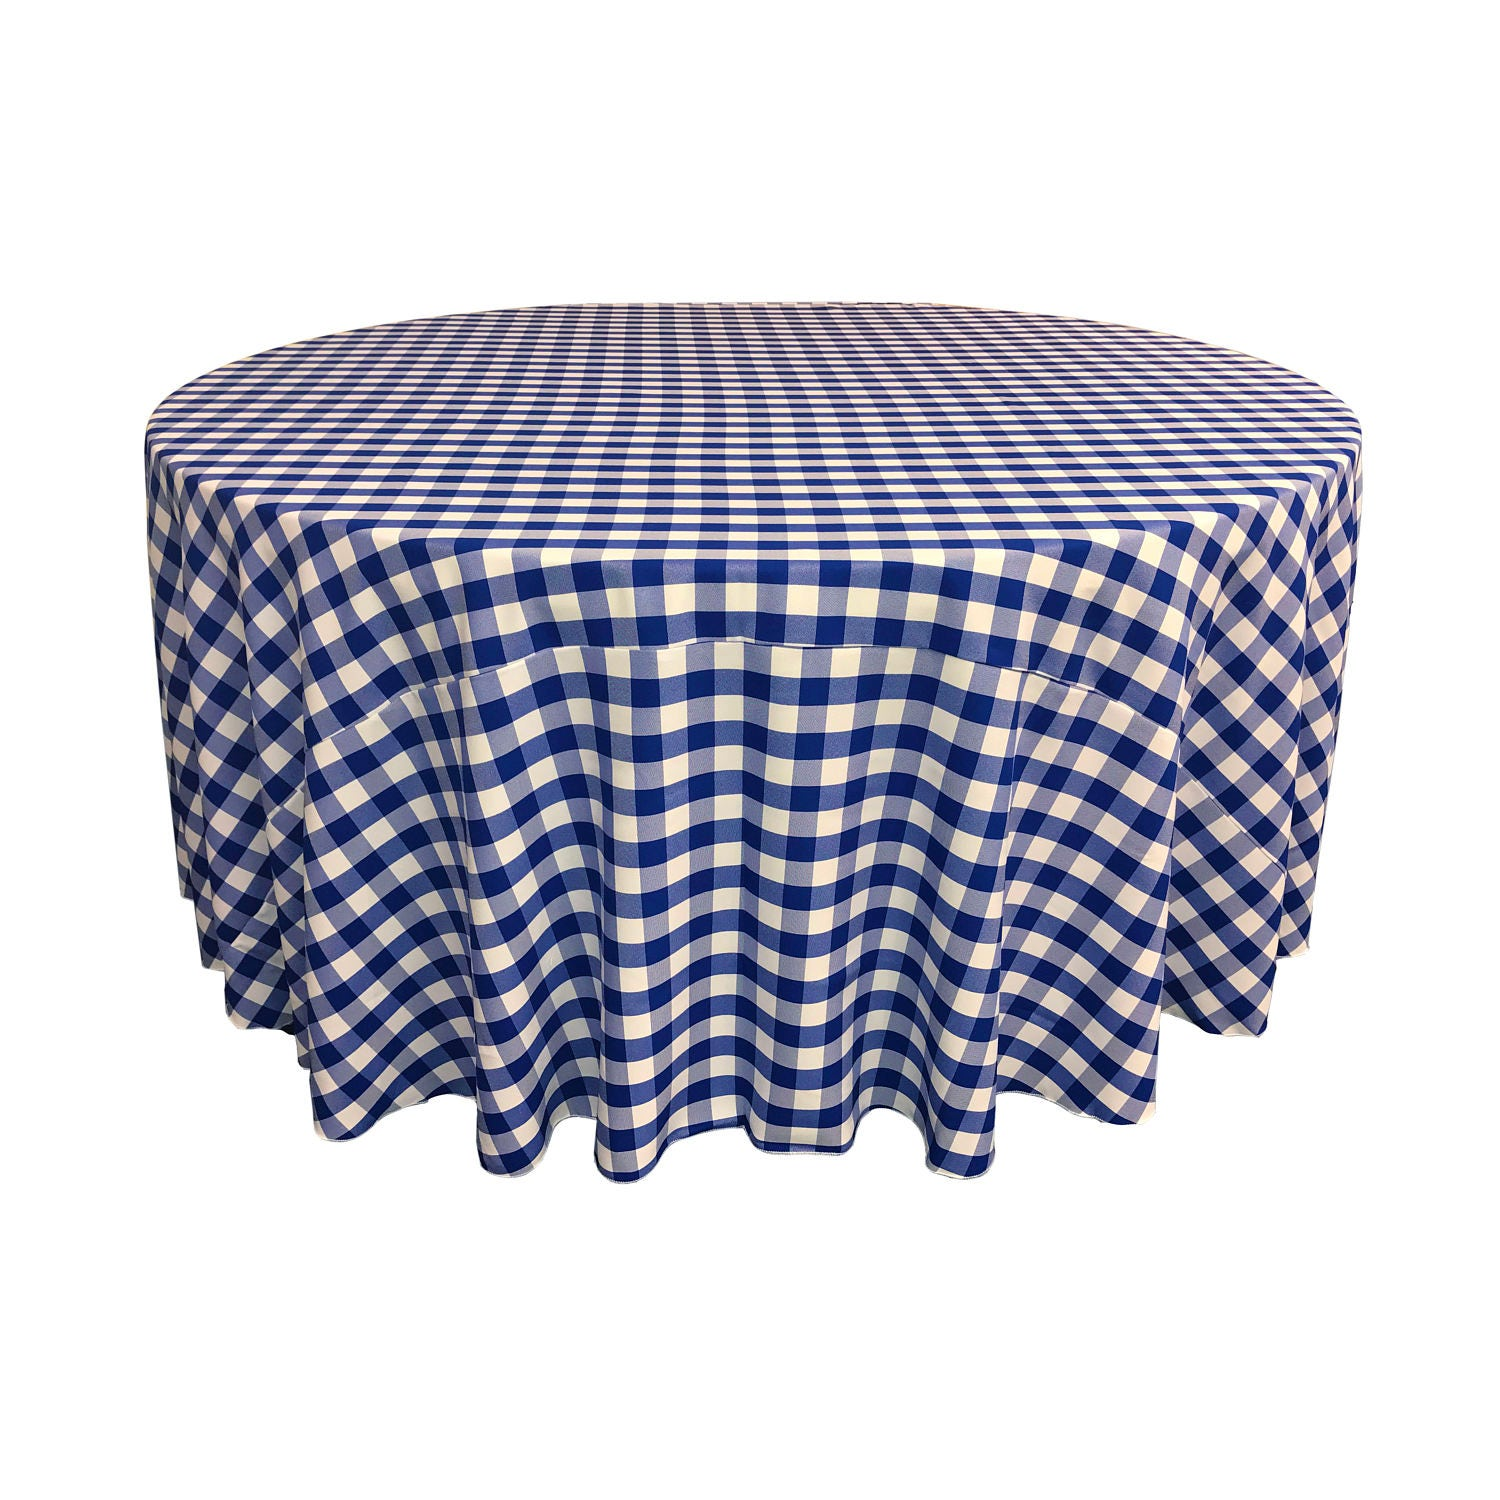 120 round polyester checkered table linens made in the for 120 round table seats how many